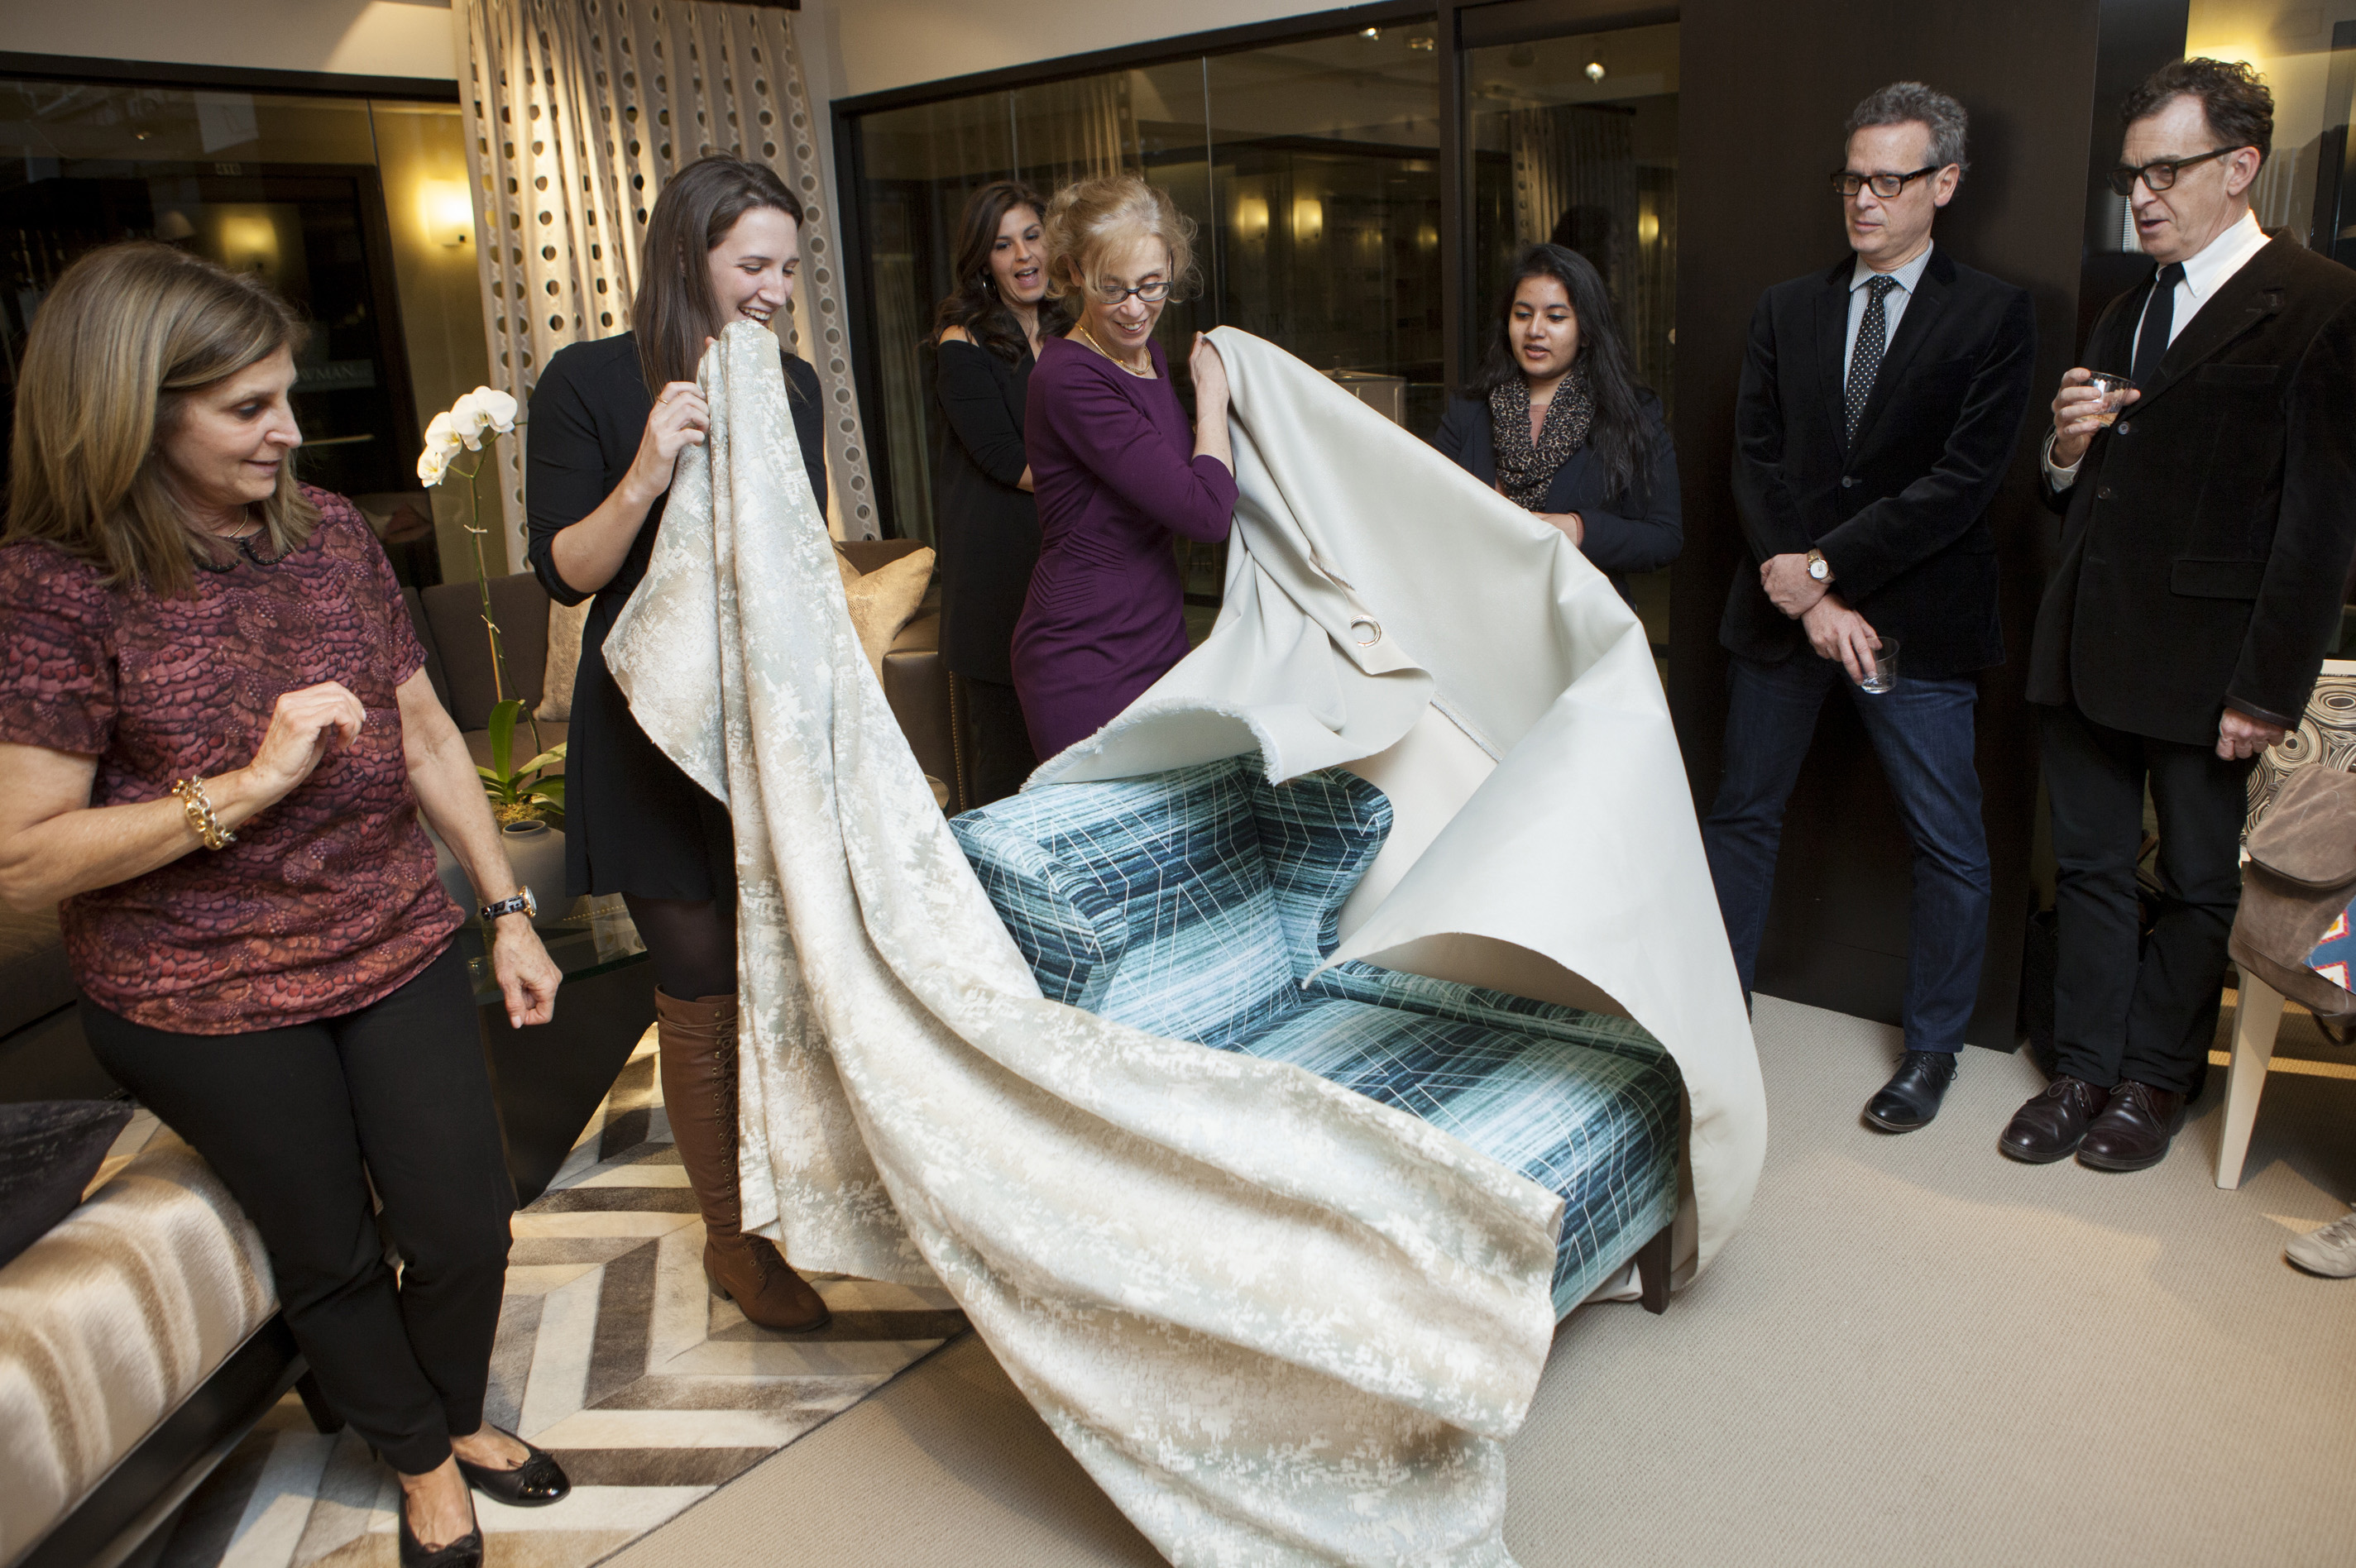 Kravet showroom manager Sheela Herr and ASID student representative Bonnie Hoeker unveil the winning team's design.